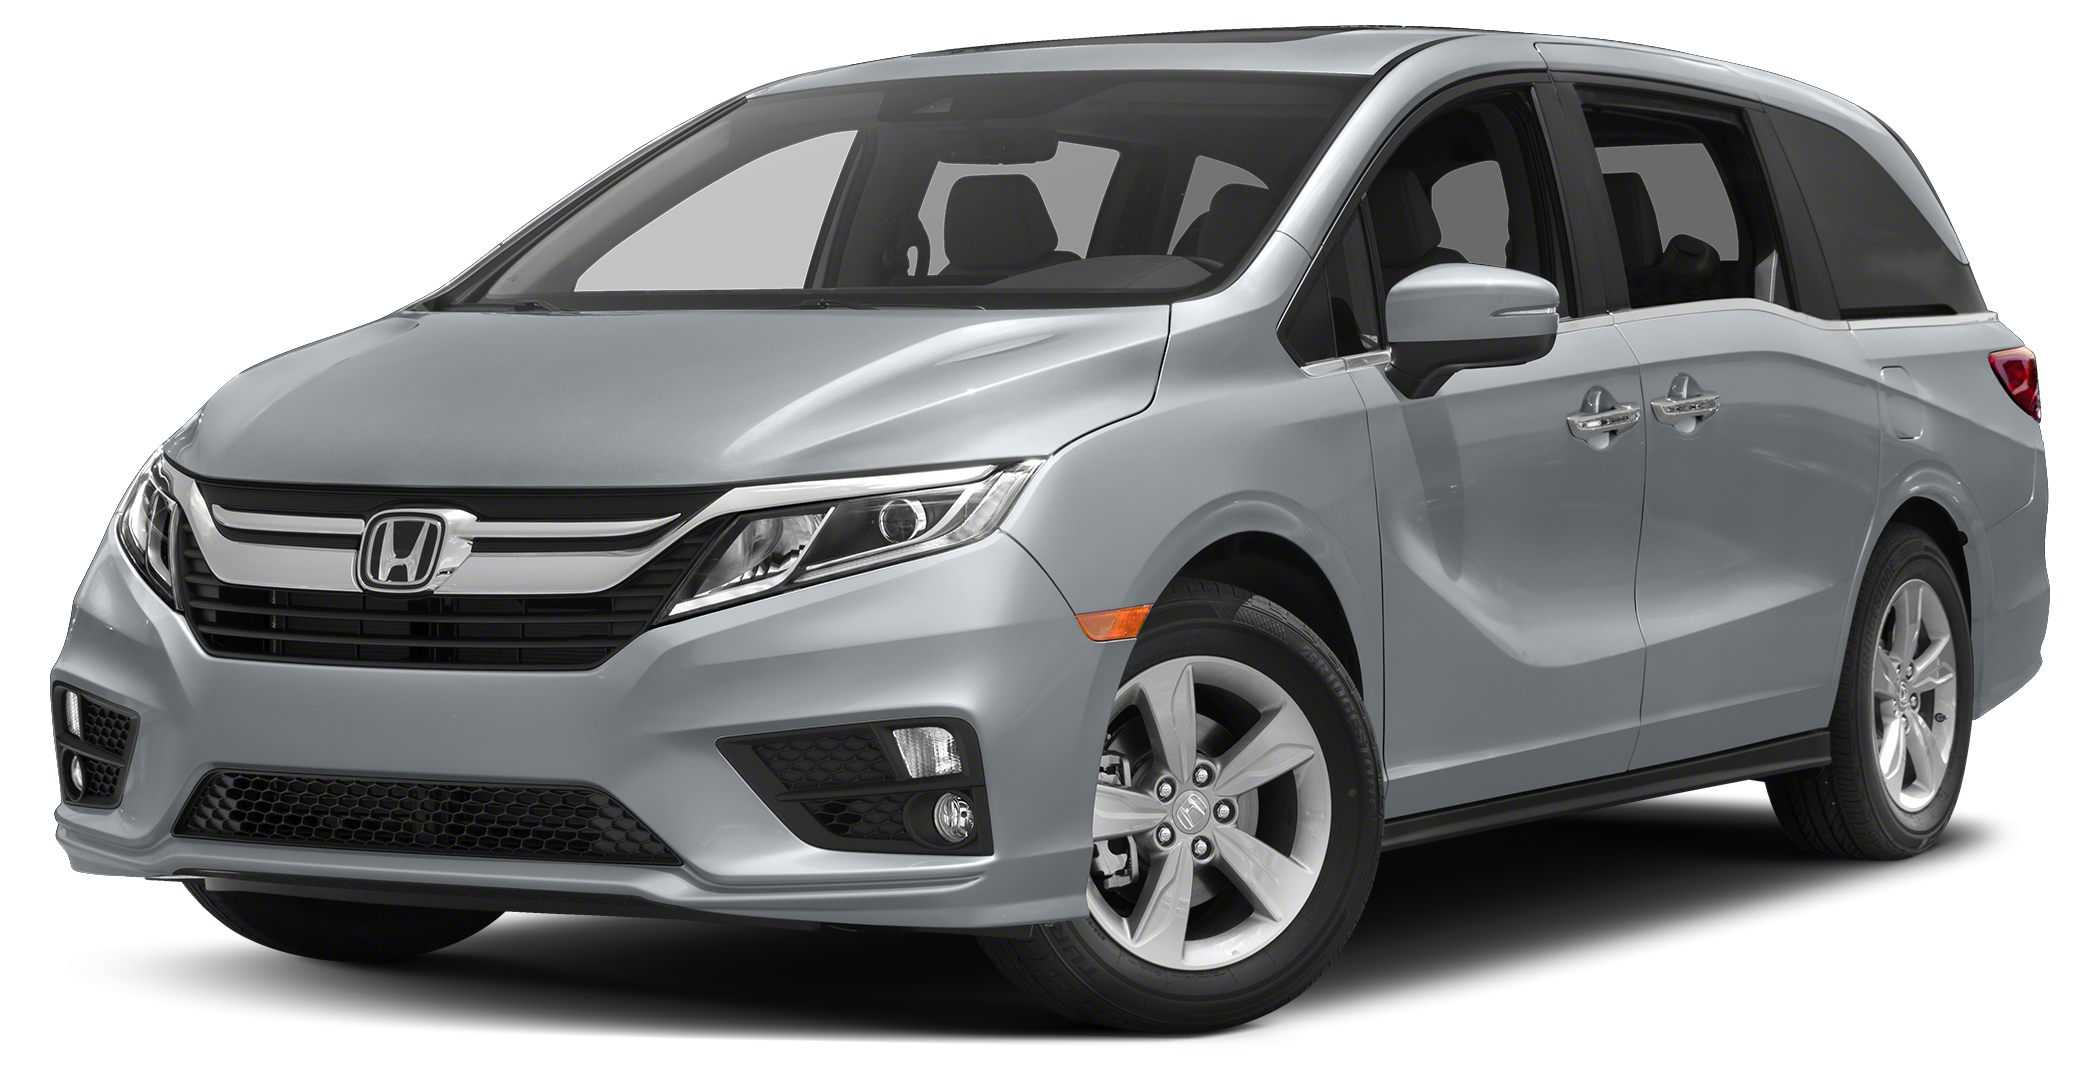 2018 honda odyssey for sale in bridgewater nj for Honda odyssey for sale nj